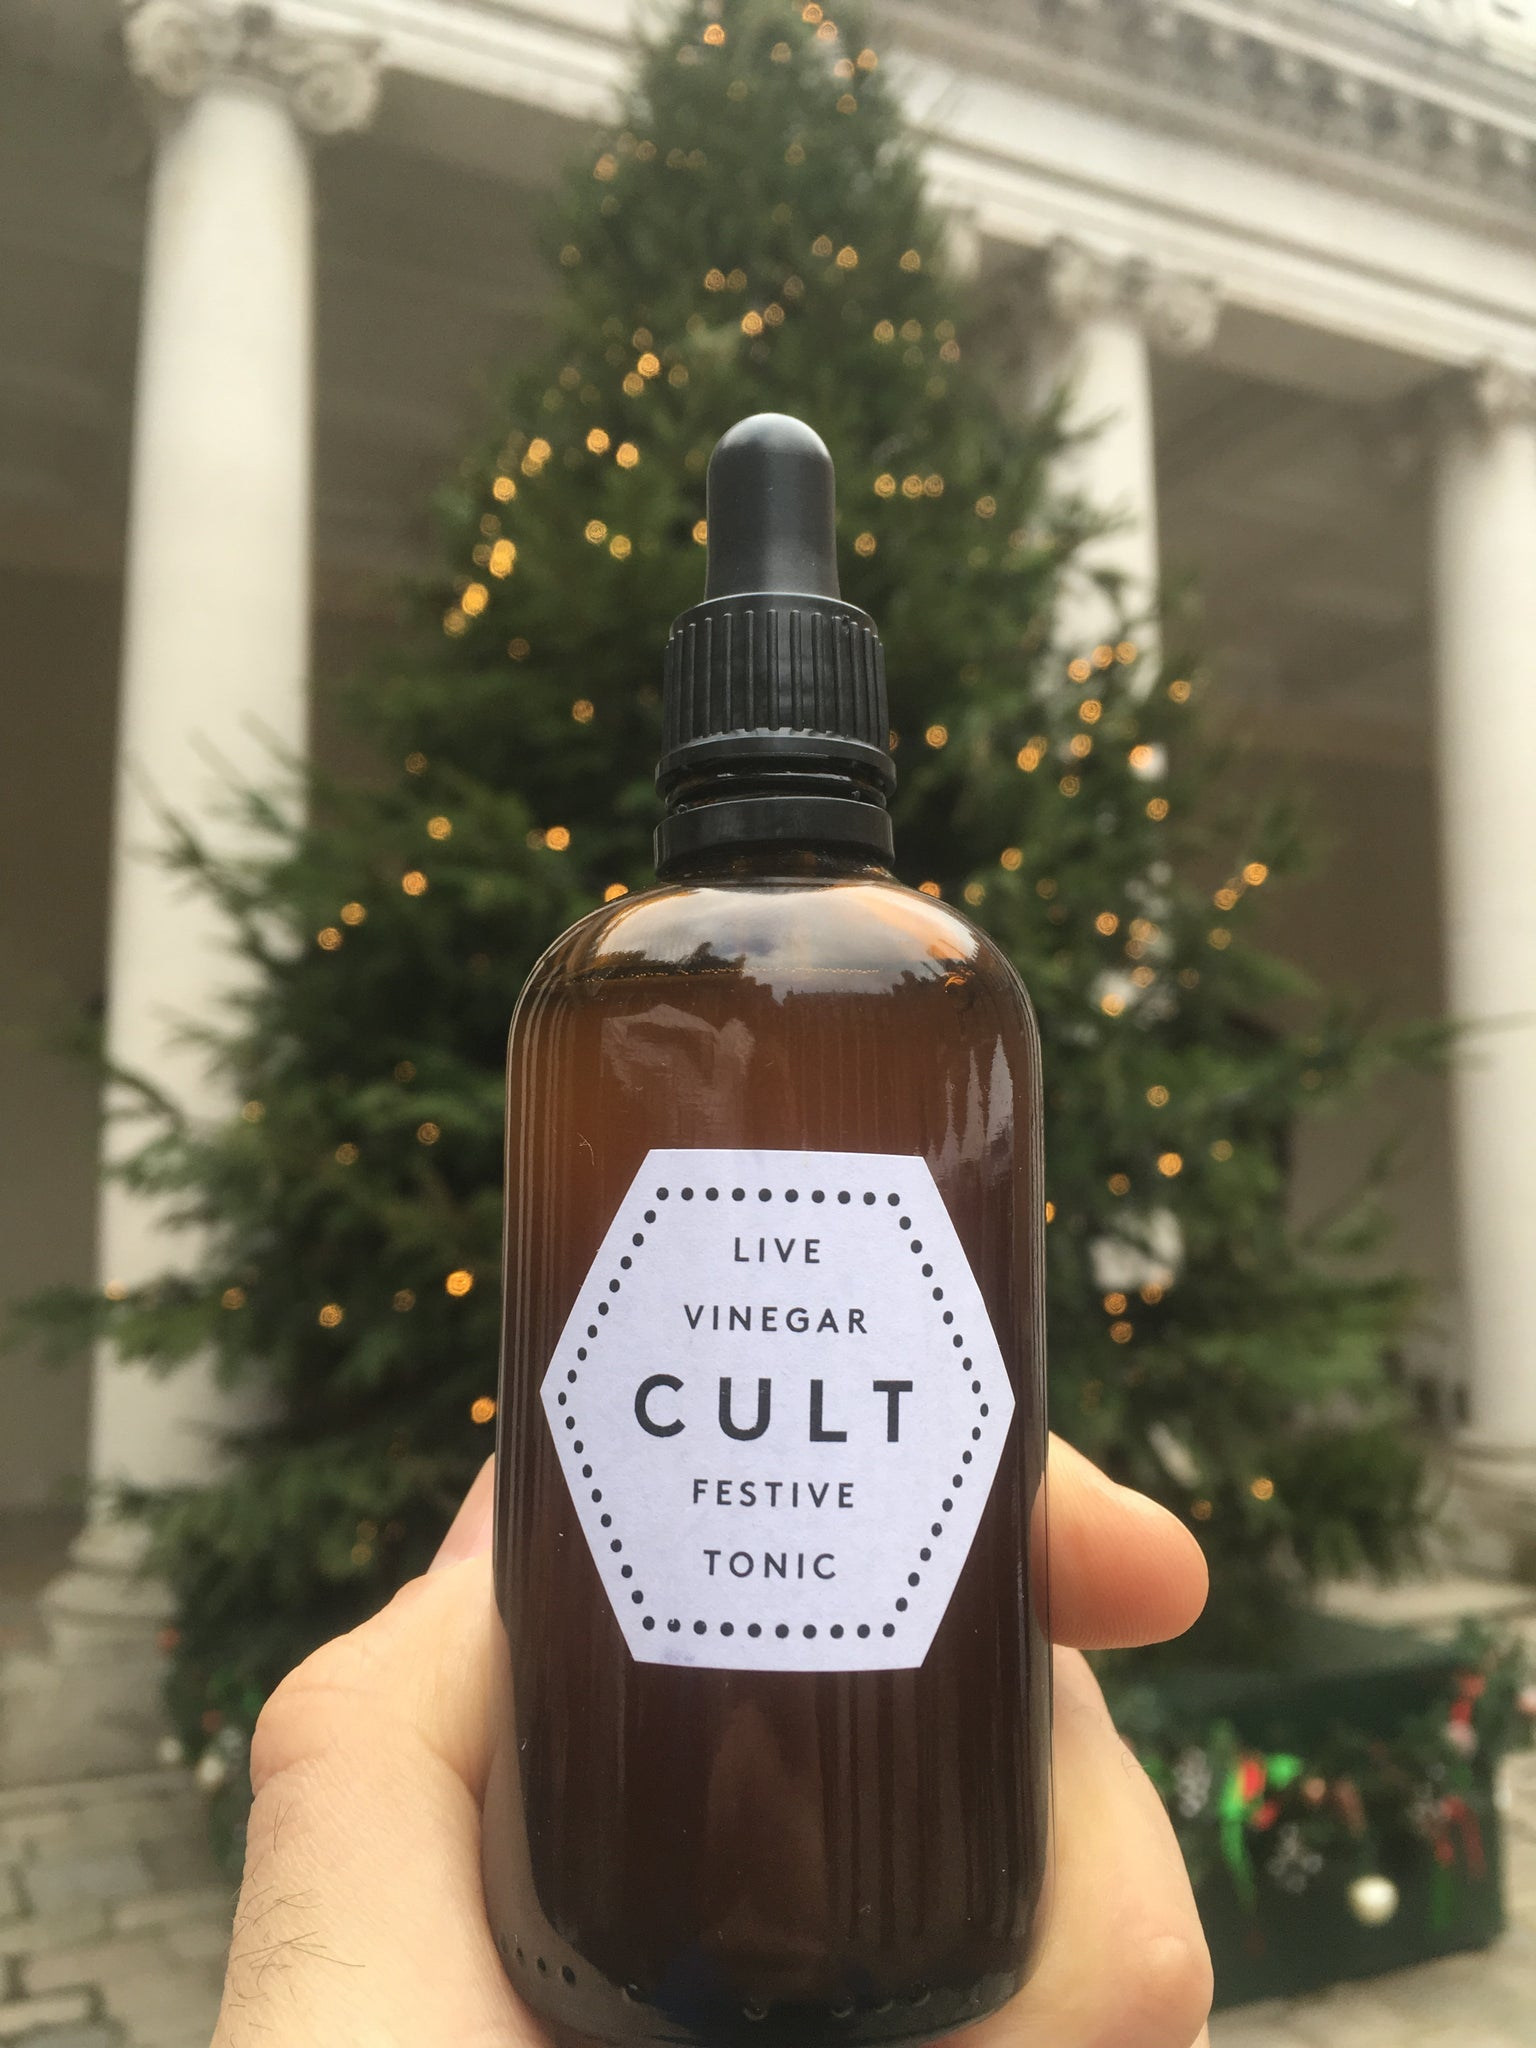 Cult Vinegar Festive Tonic